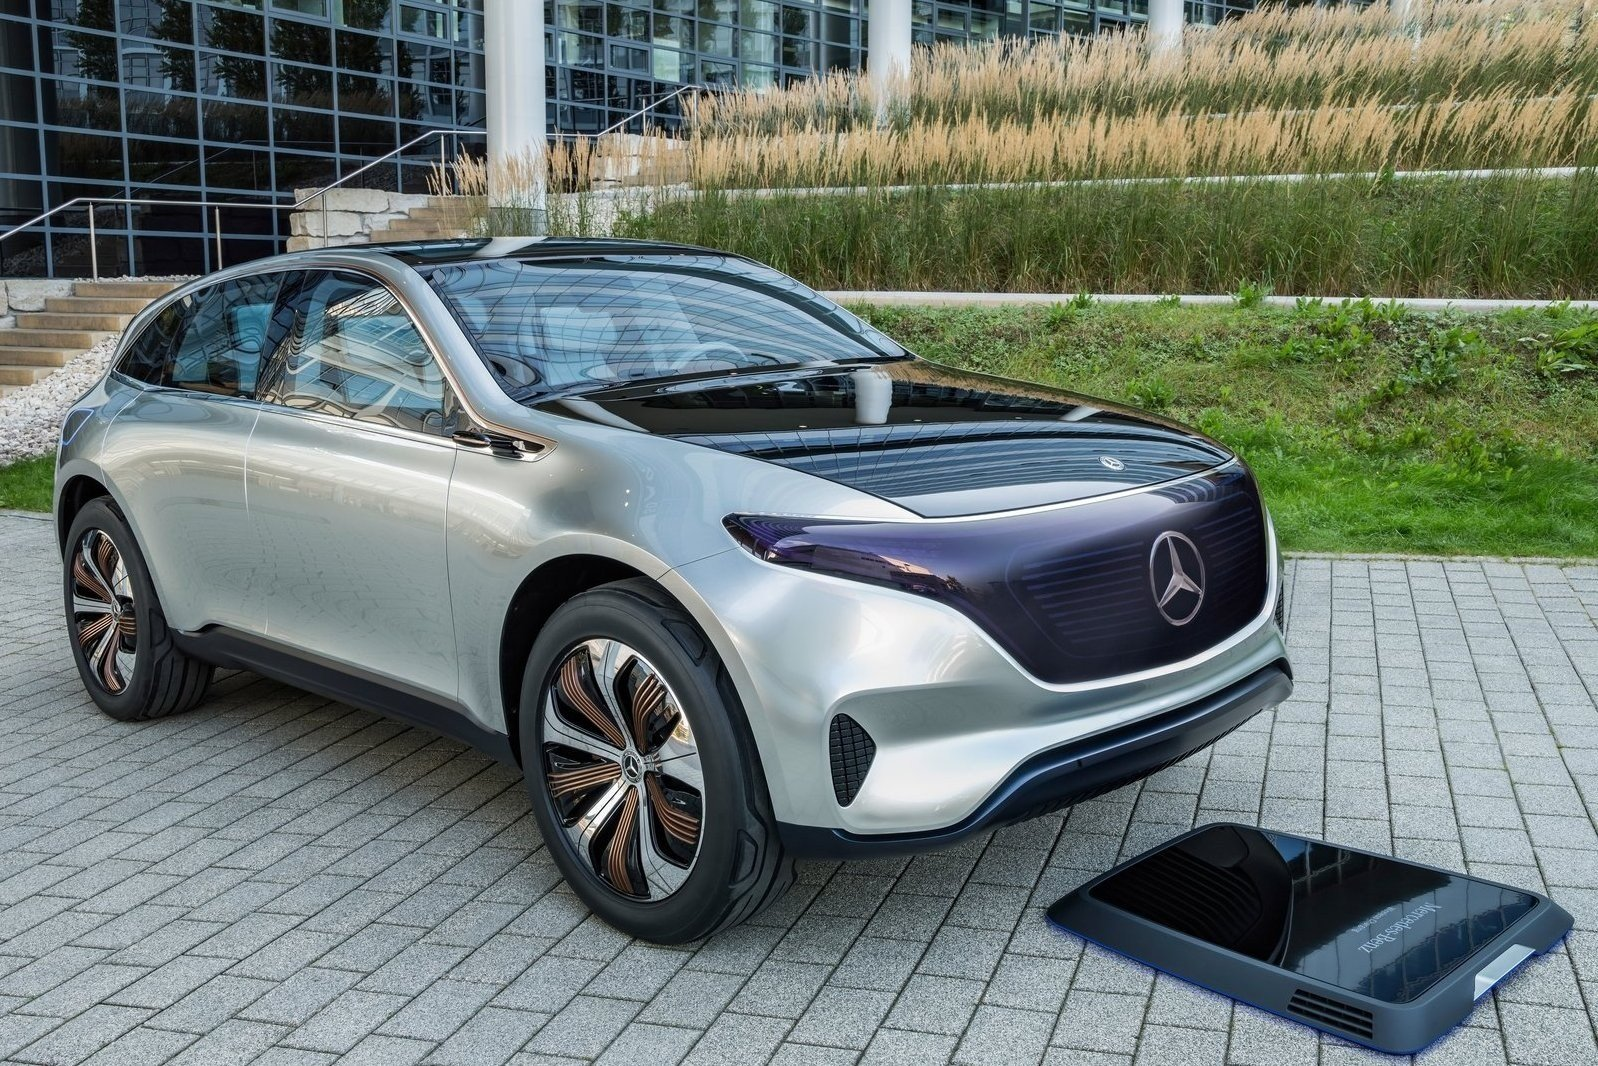 Latest Mercedes Benz Generation Eq Concept 2016 Авто Фото Free Download